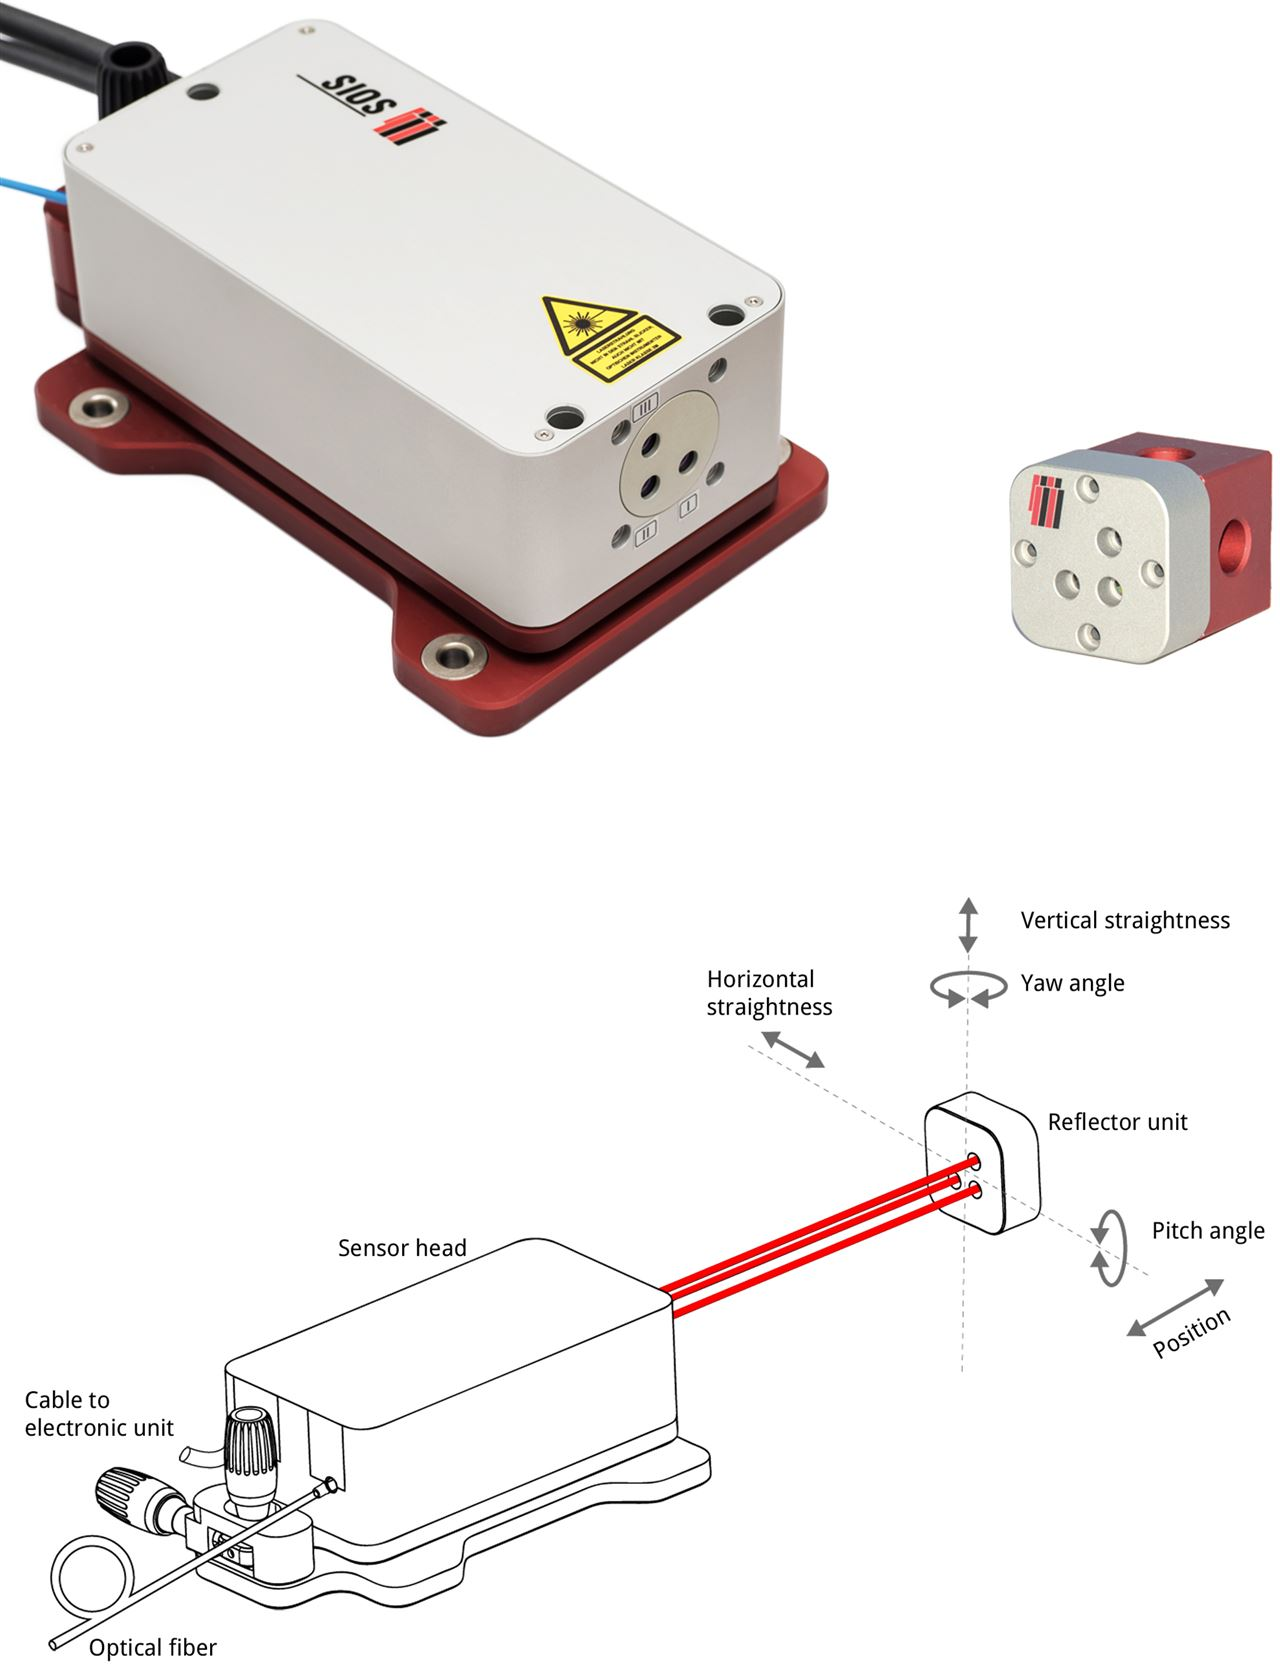 Interferometer SP 5000 TR for simultaneous length and angle measurement with dynamics up to 3 m/s